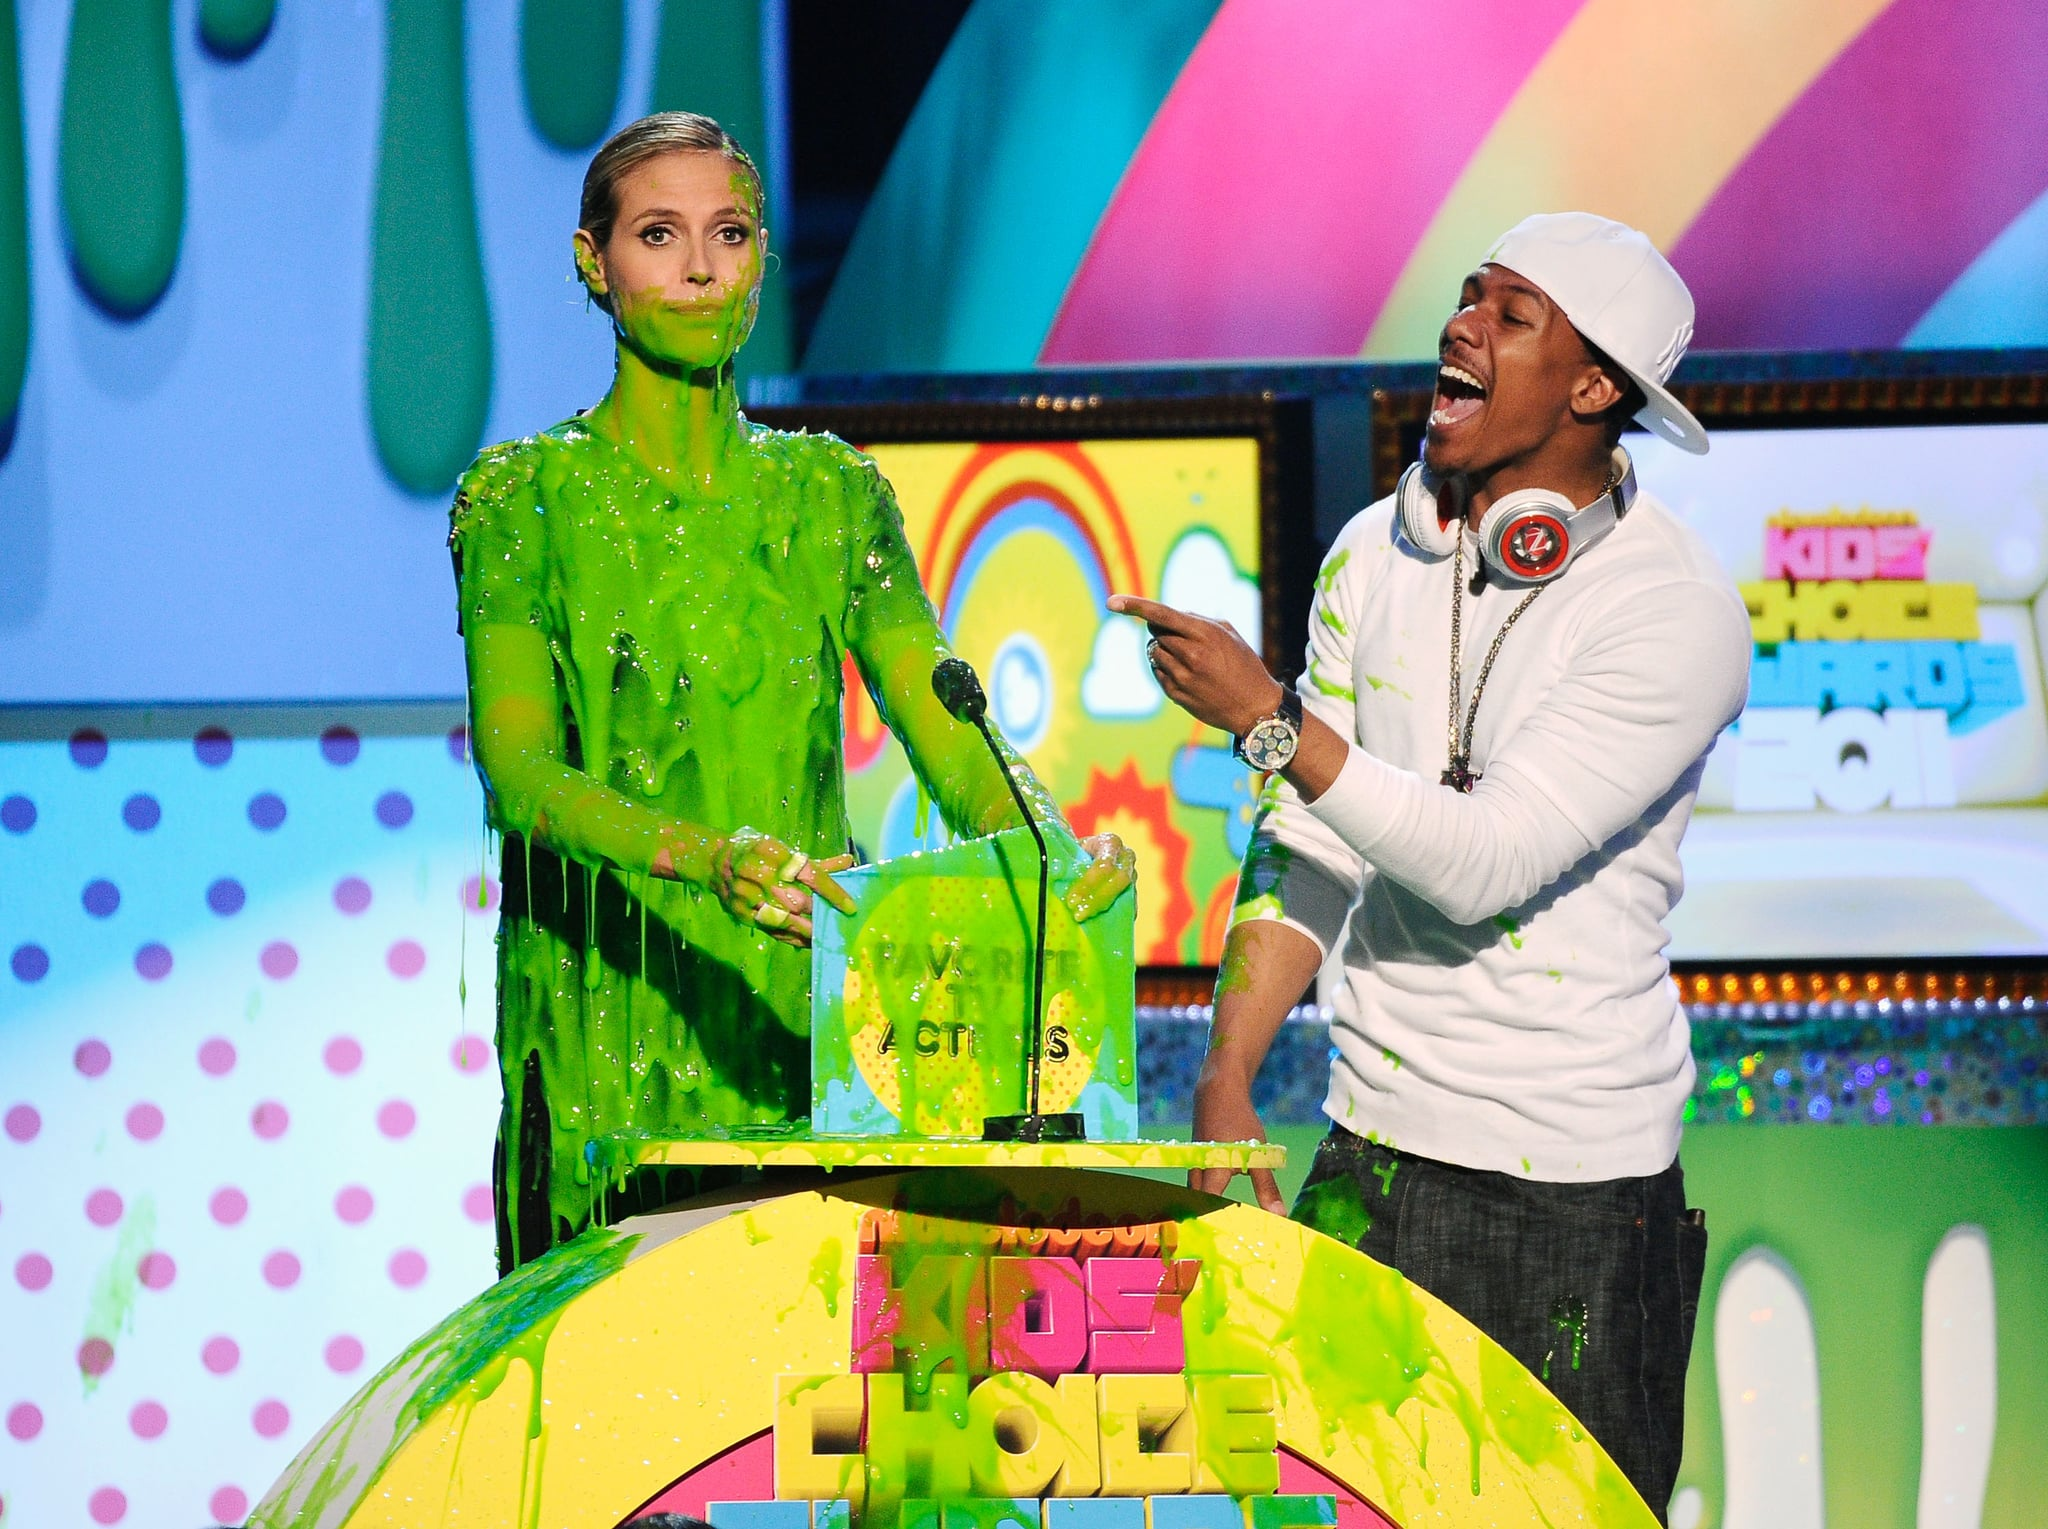 Nick Cannon had a serious laugh when Heidi Klum got slimed in 2011.